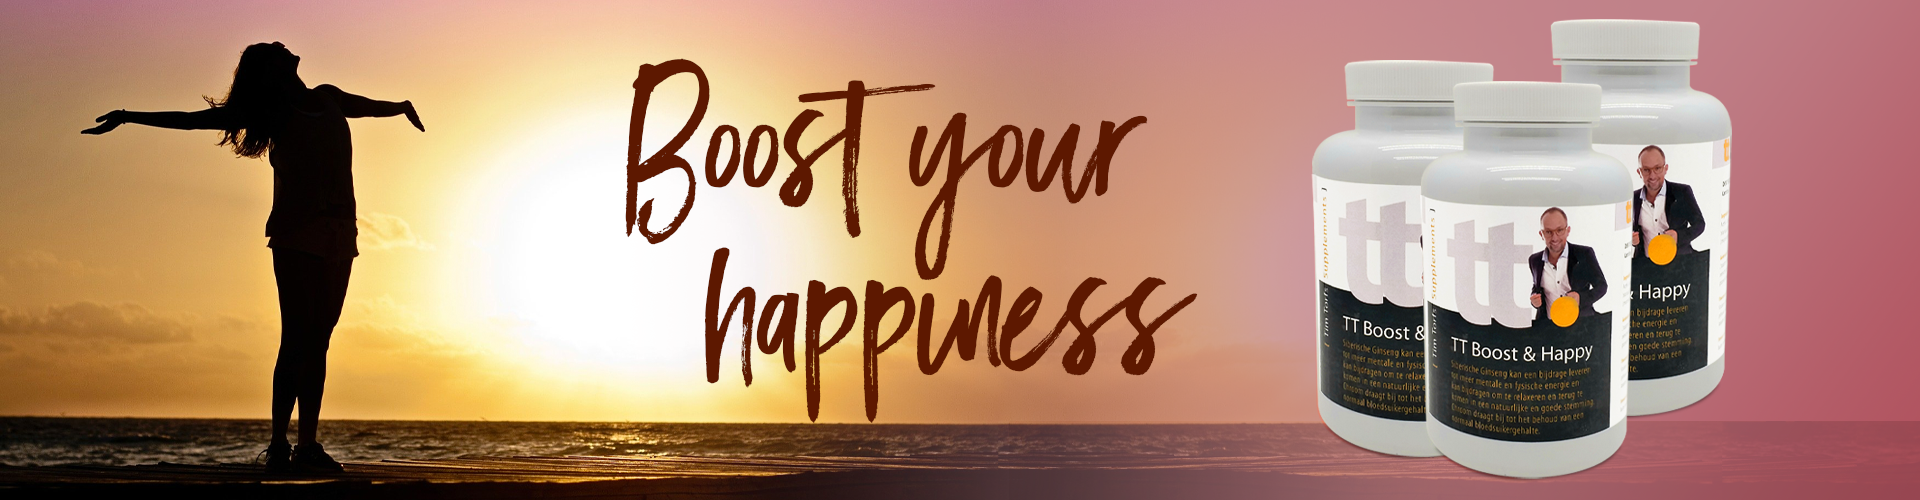 Boost your happiness